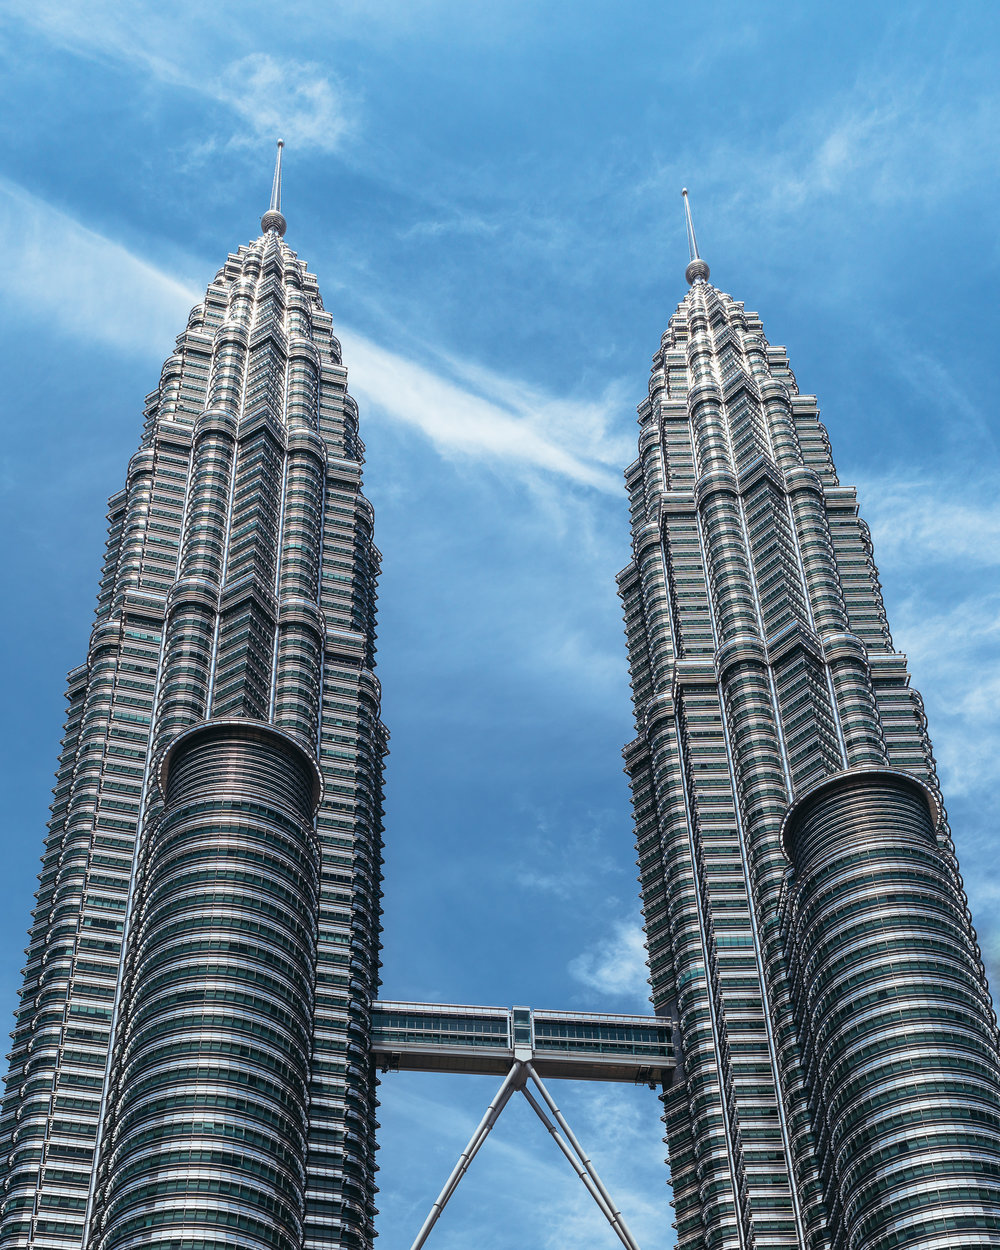 Petronas Towers, minus the hundreds of tourists and locals on the ground floor.